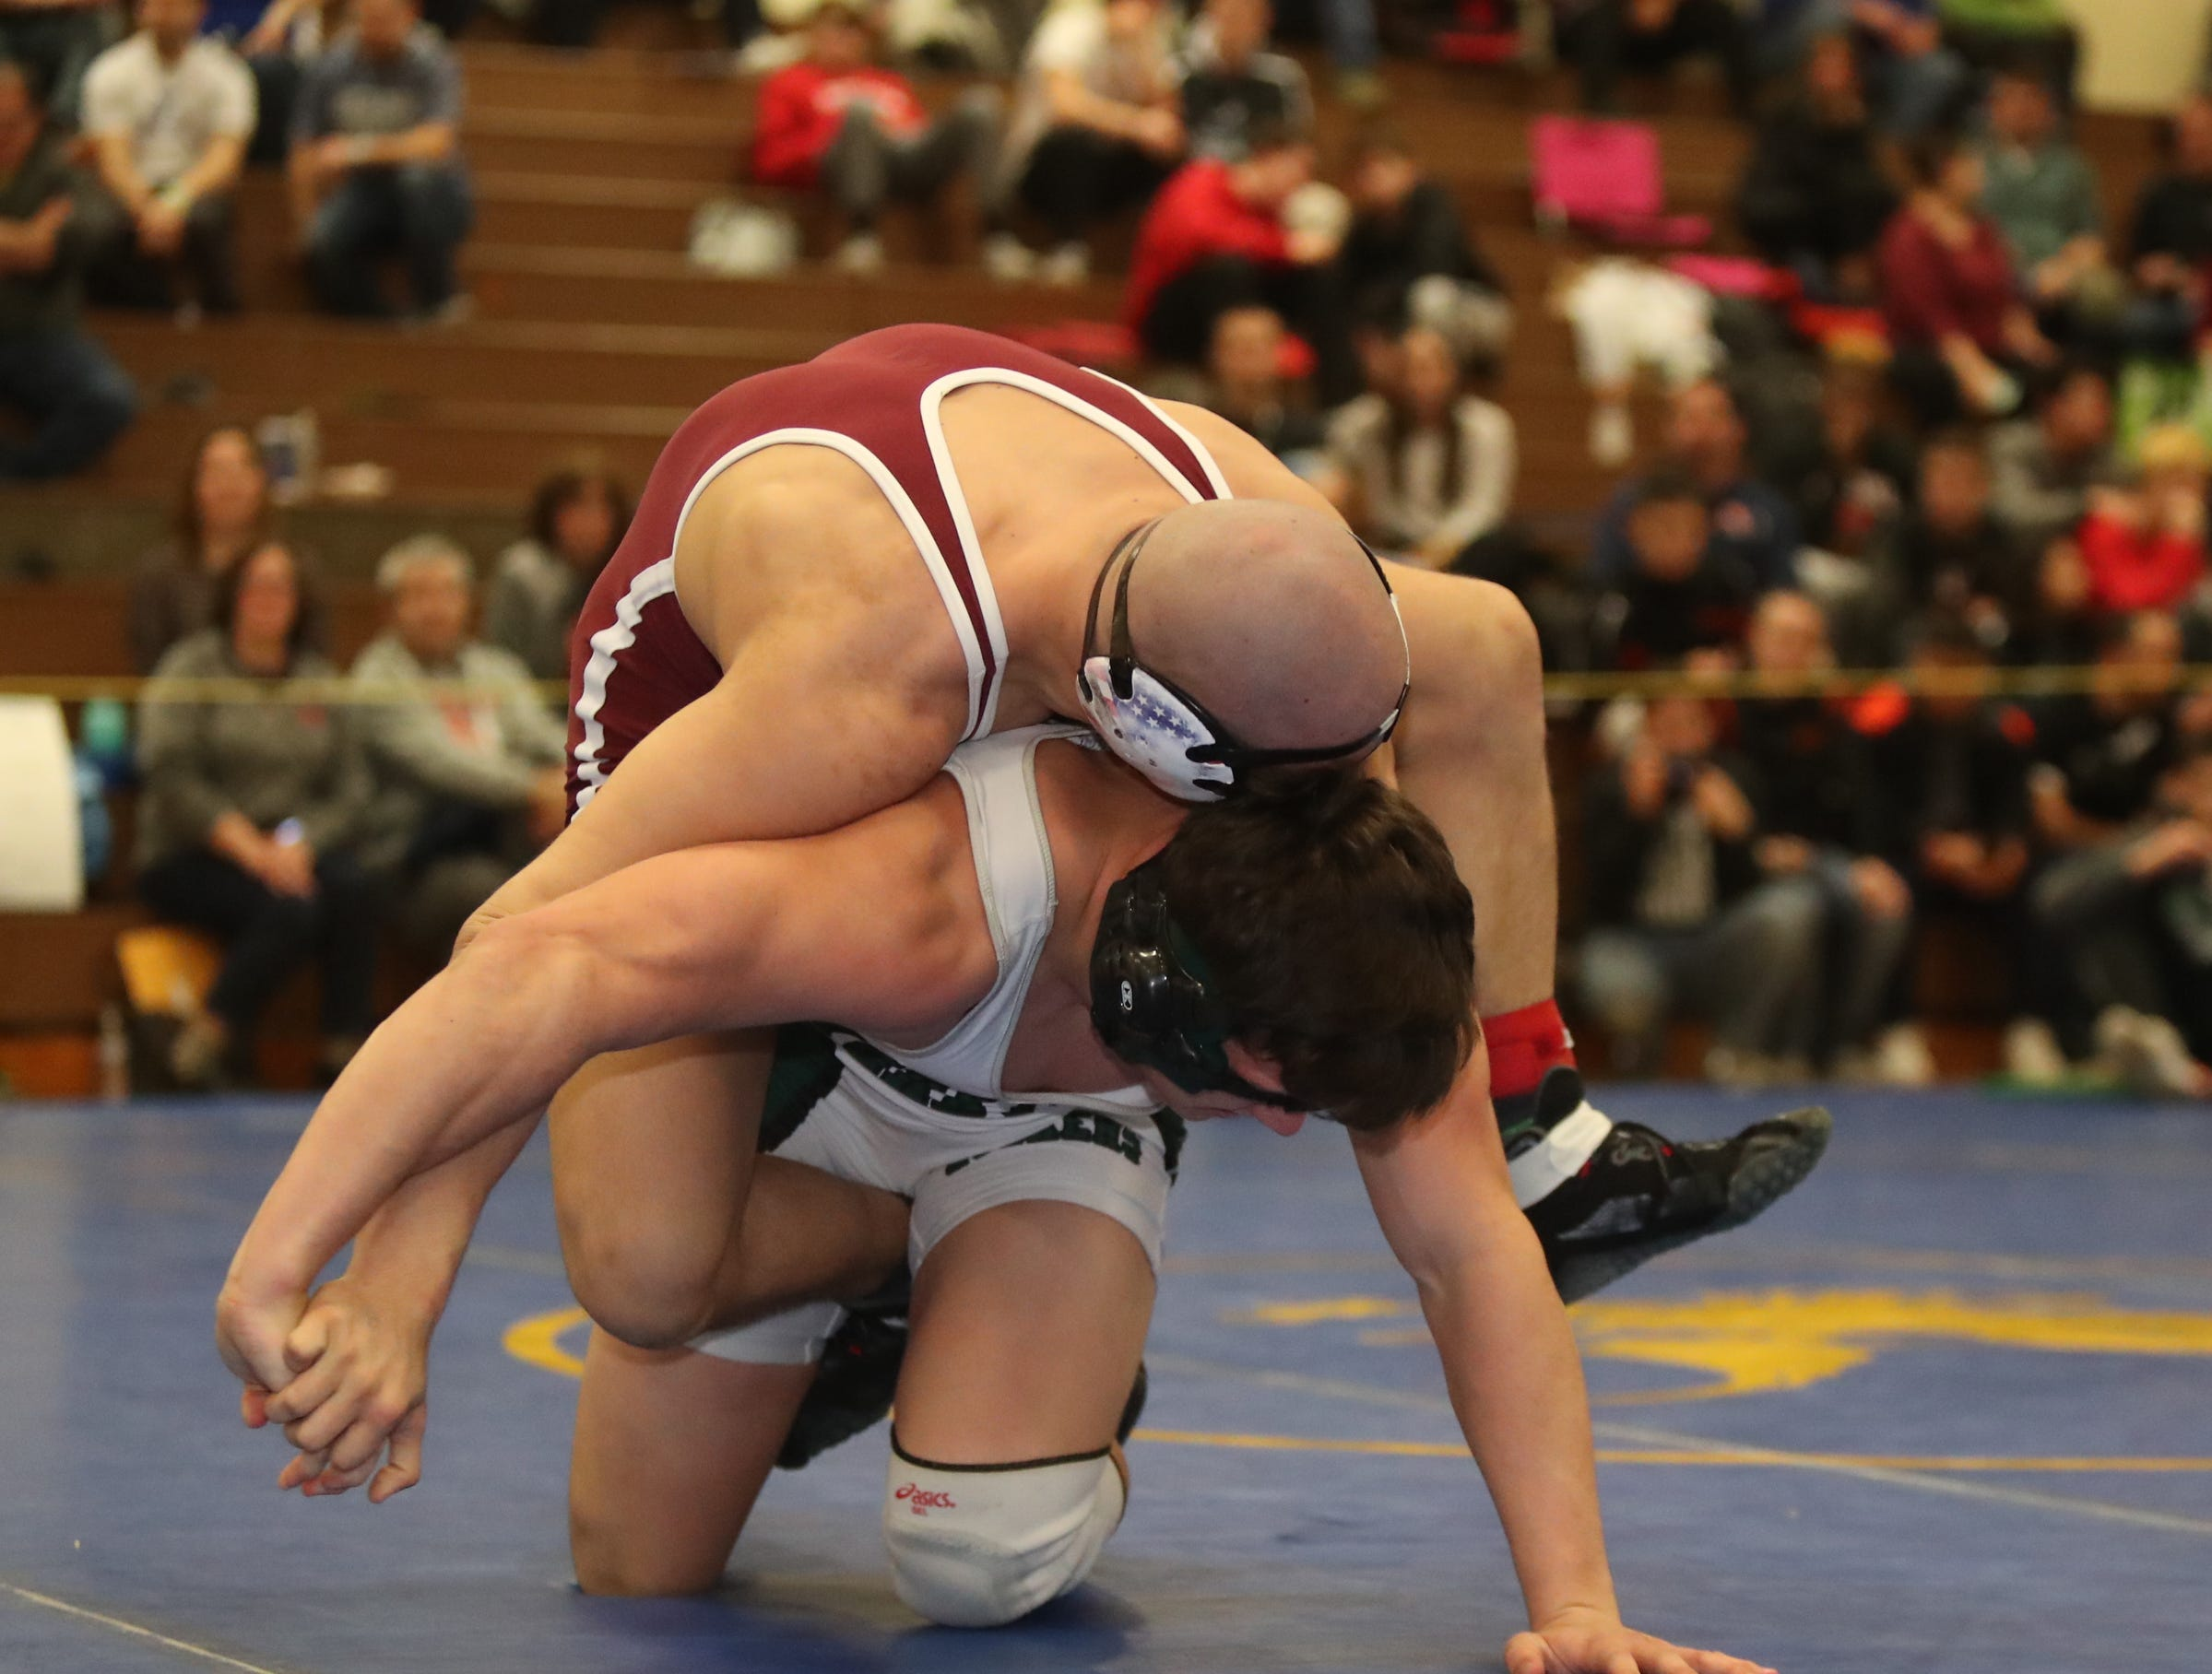 Harrison's Zach Finn defeats Yorktown's Ben Robinson in the 220-pound match of the division I wrestling finals at Clarkstown South High School on Sunday, February 10, 2019.